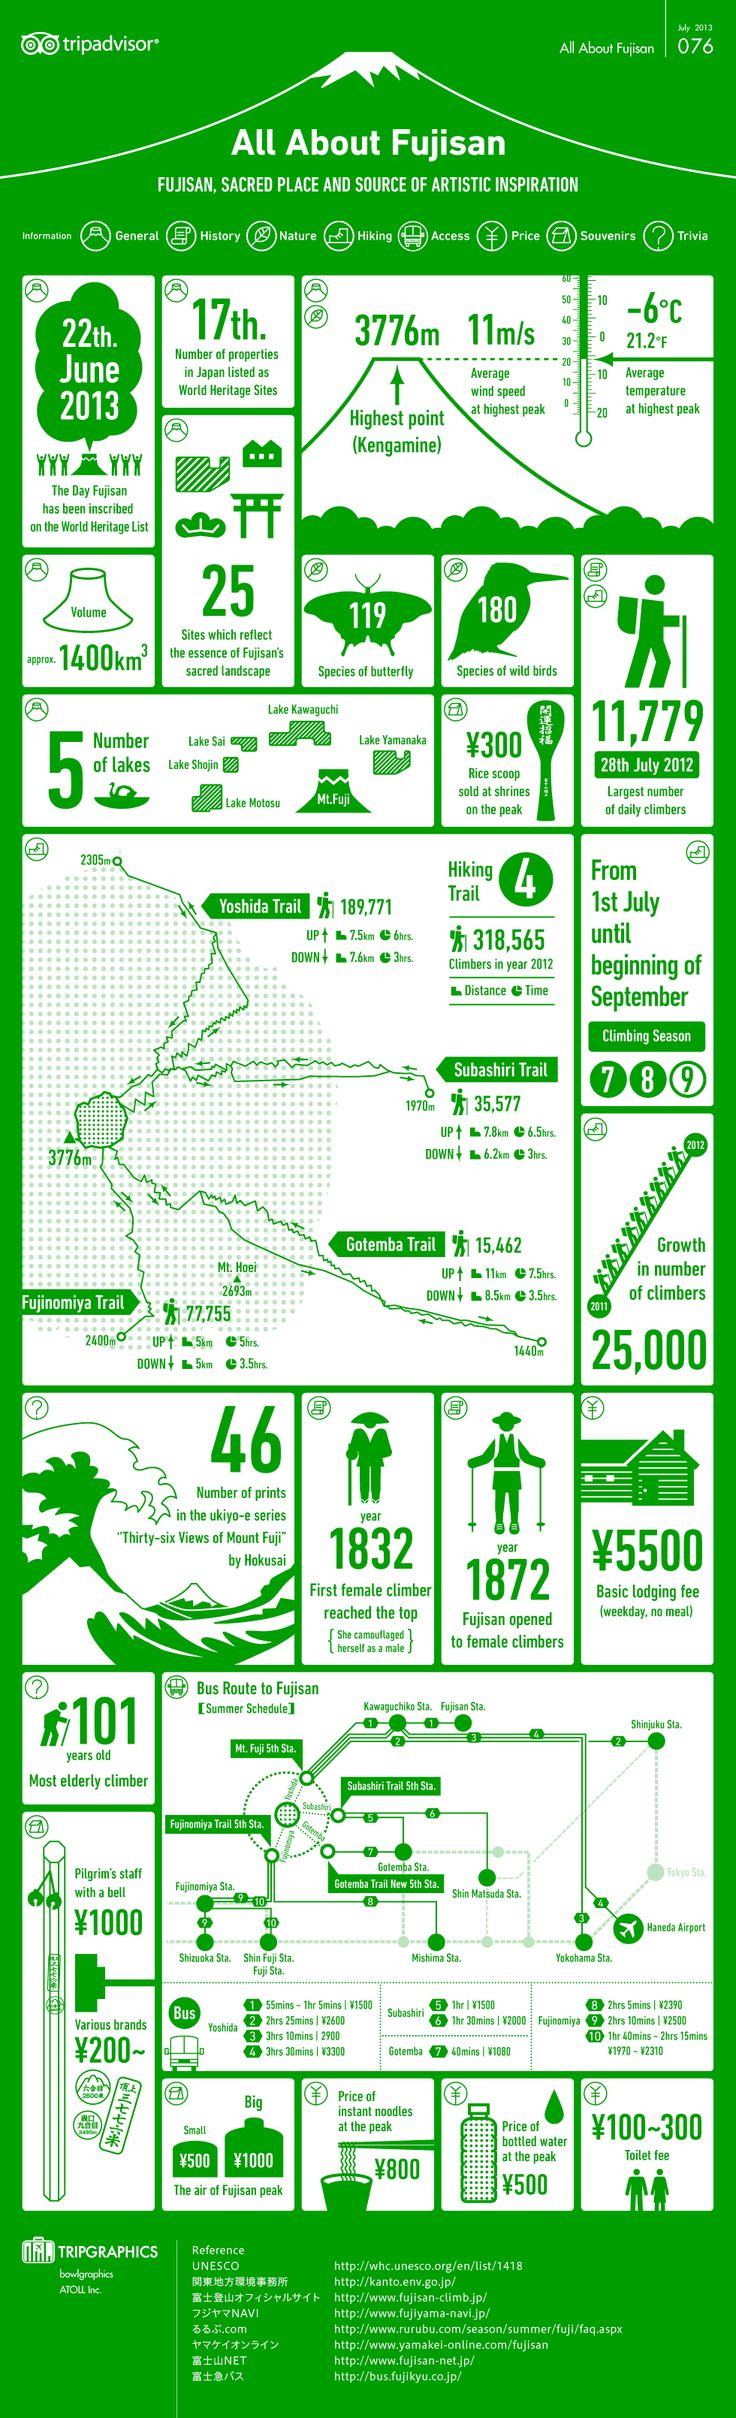 Unique Infographic Design, All About Fujisan #Infographic #Design…